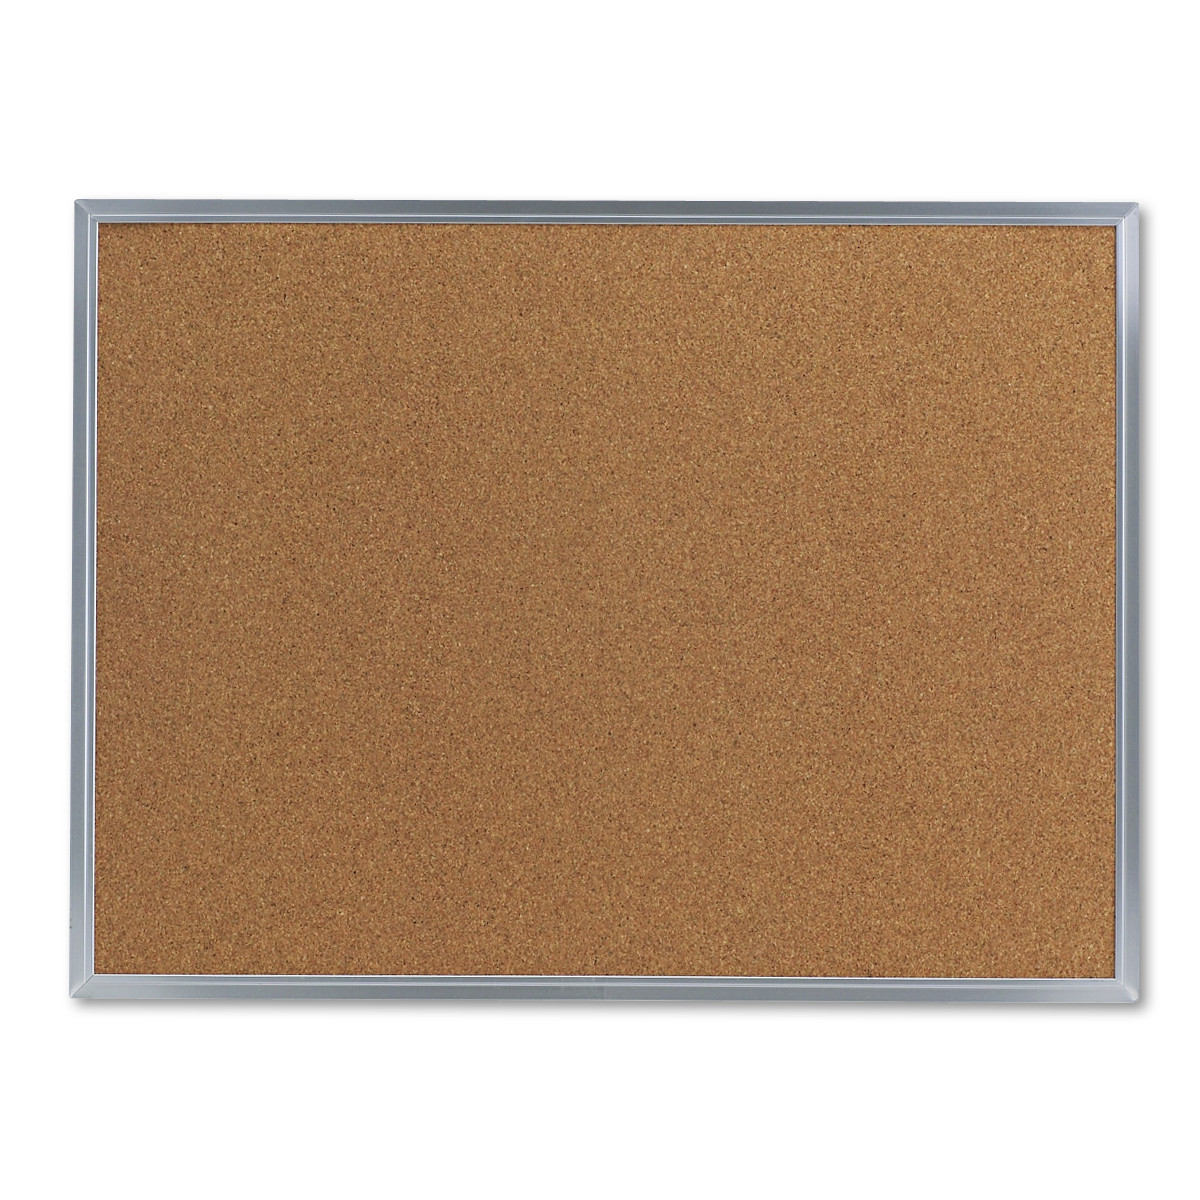 Universal Bulletin Board, Natural Cork, 24 x 18, Satin-Finished Aluminum Frame -UNV43612